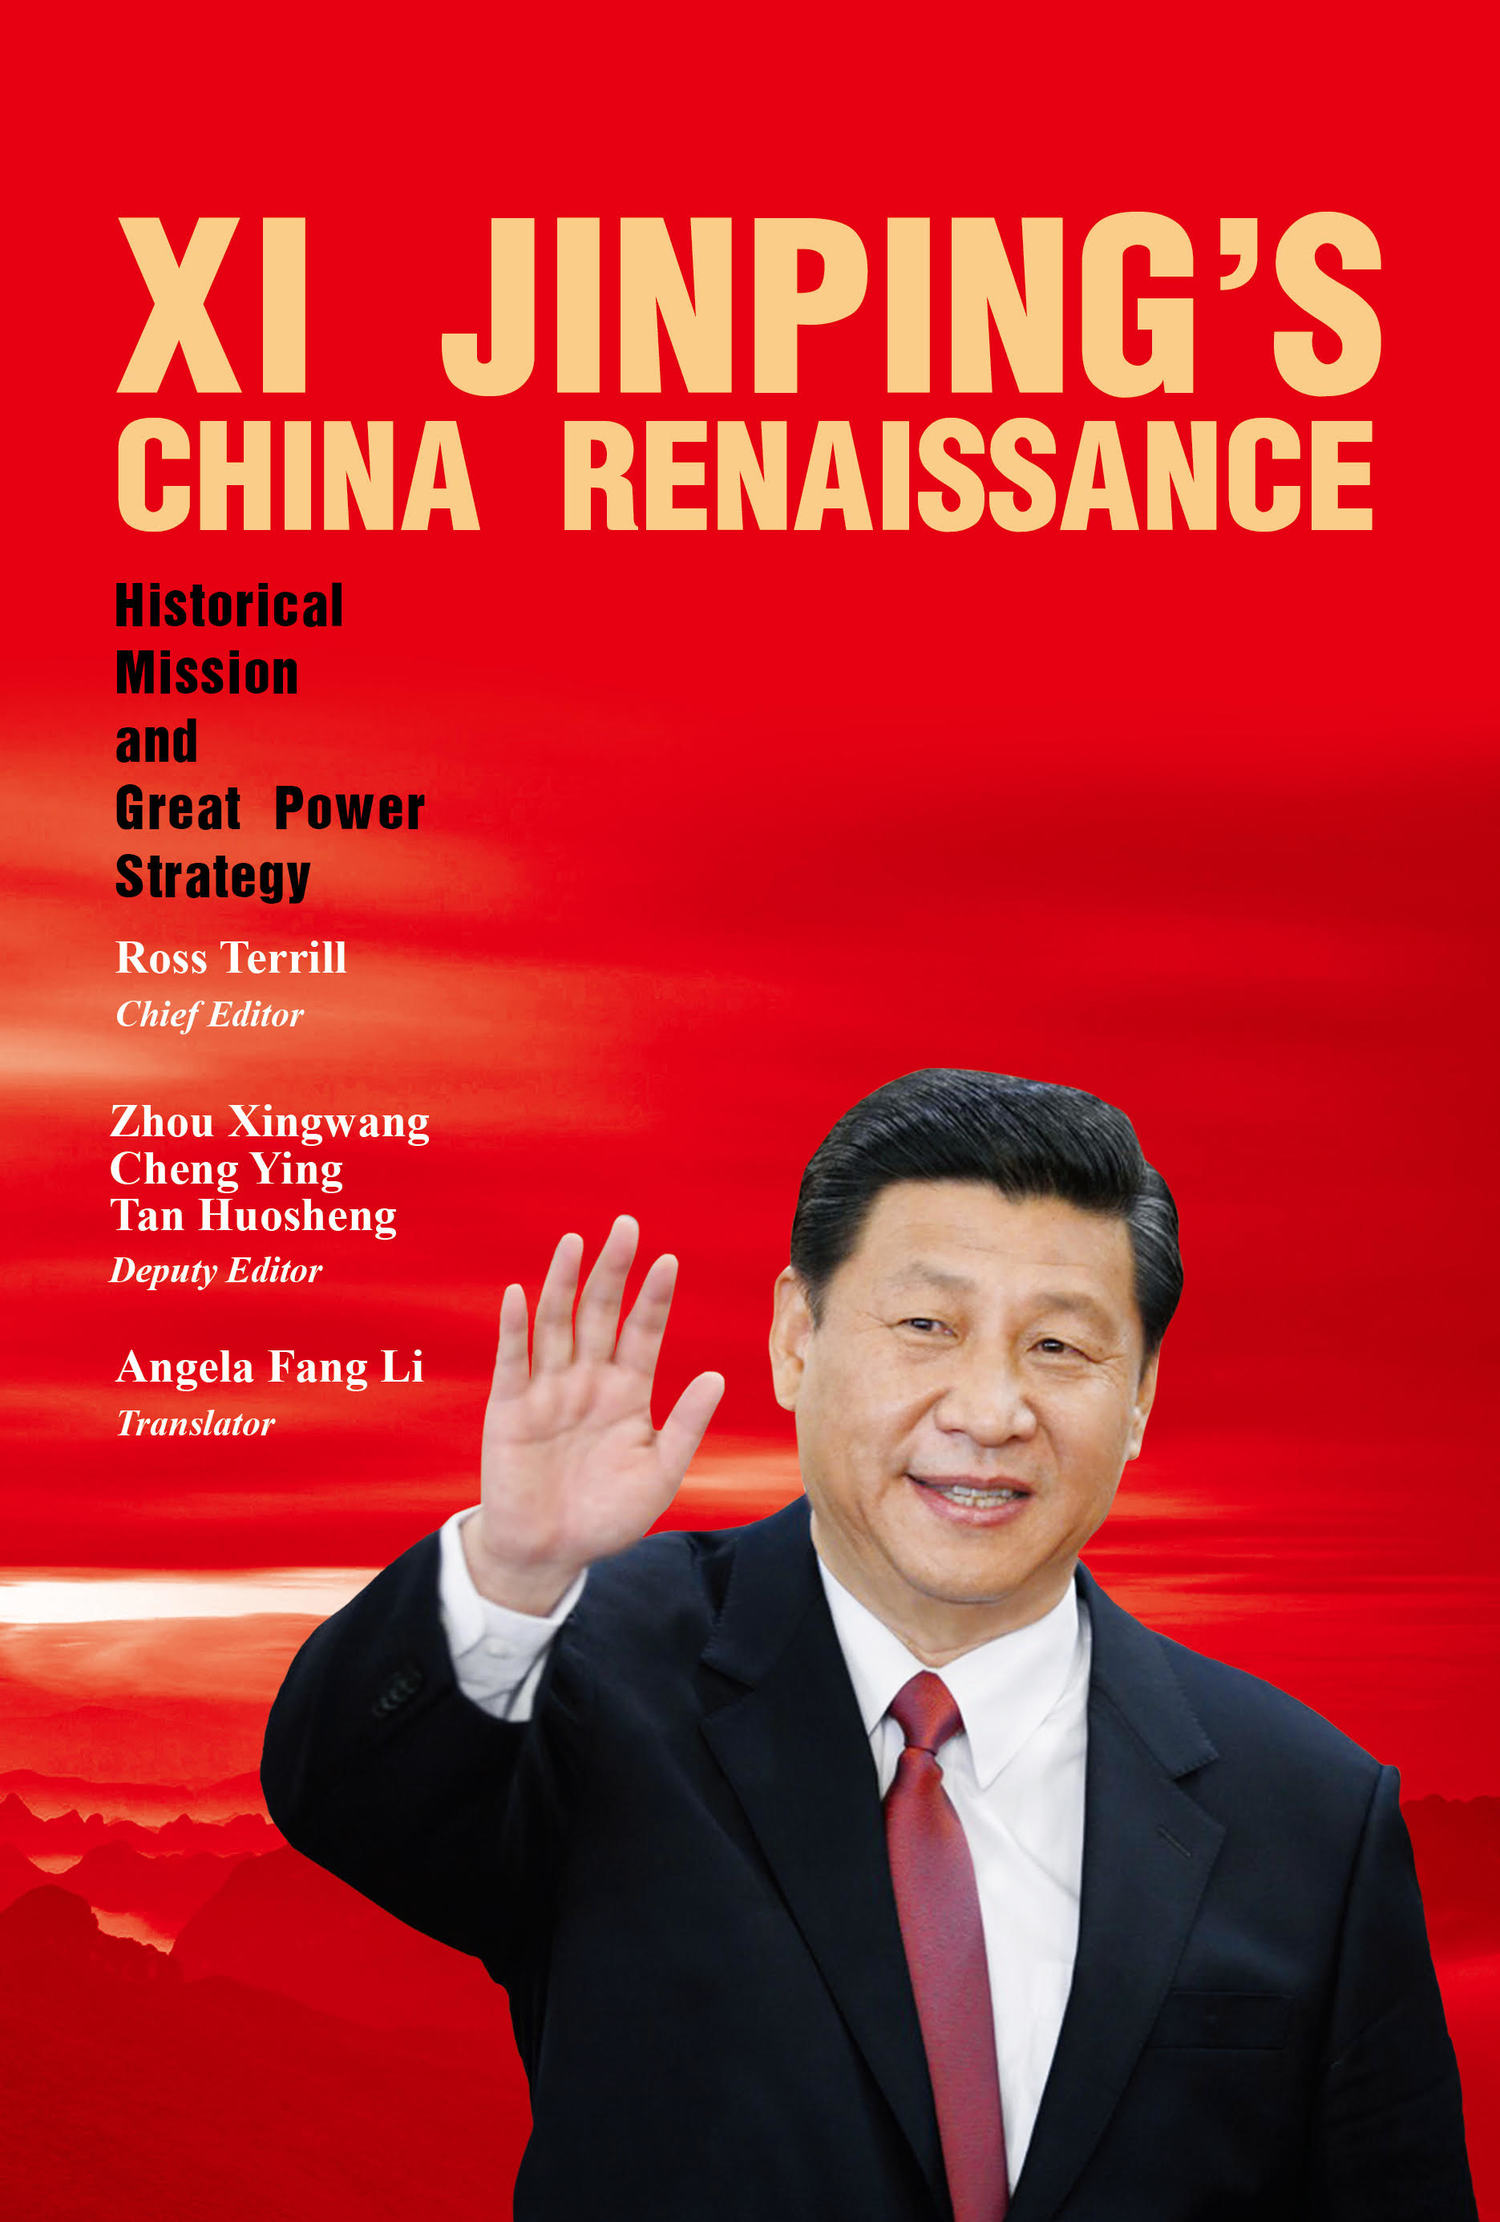 Xi Jinping's China Renaissance: Historical Mission and Great Power Strategy